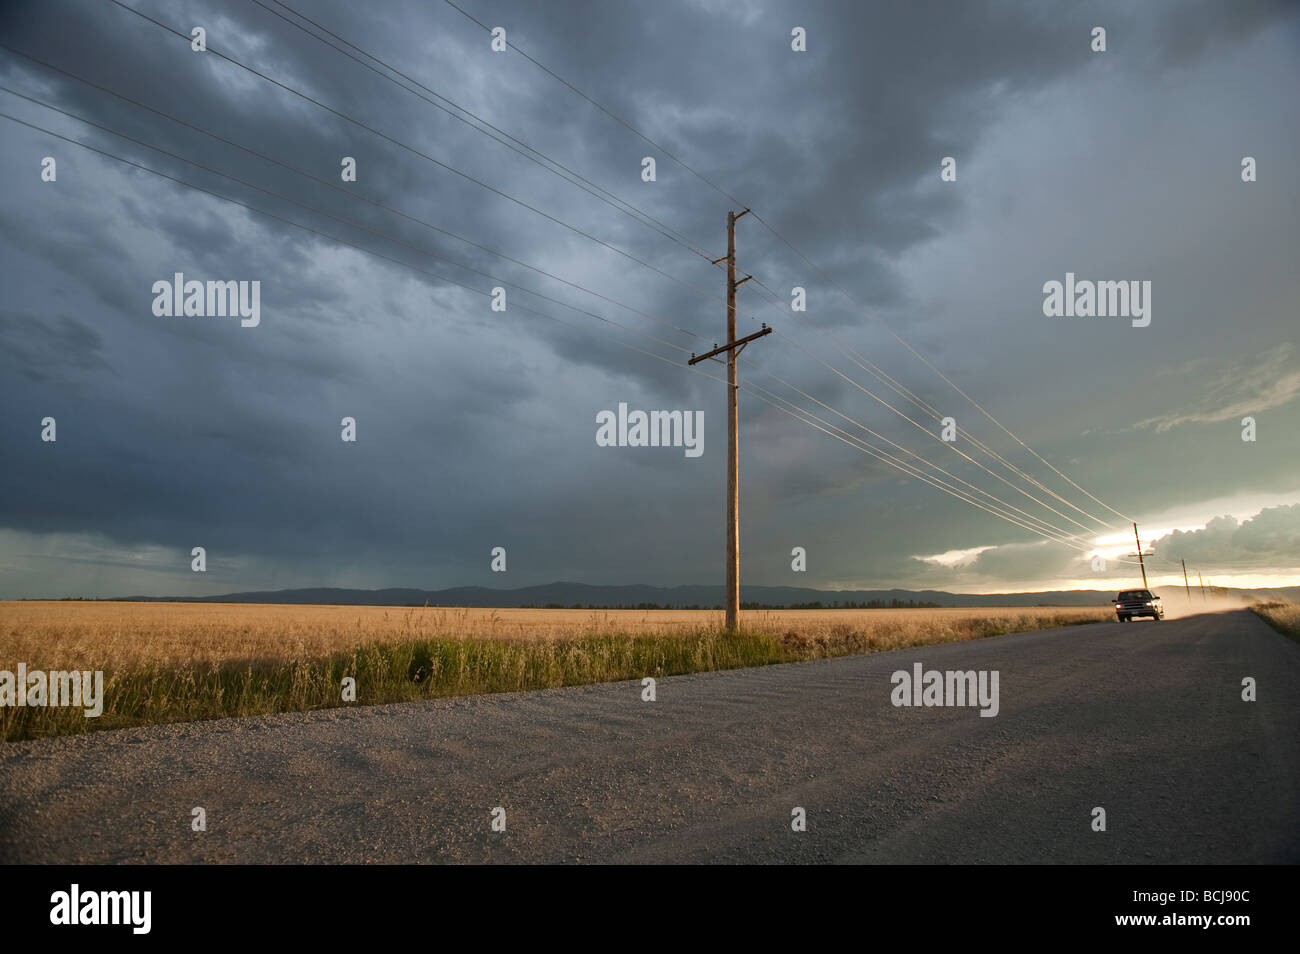 Truck SUV vehicle automobile on unpaved gravel road lined with utility poles at sunset with dramatic sky Montana - Stock Image